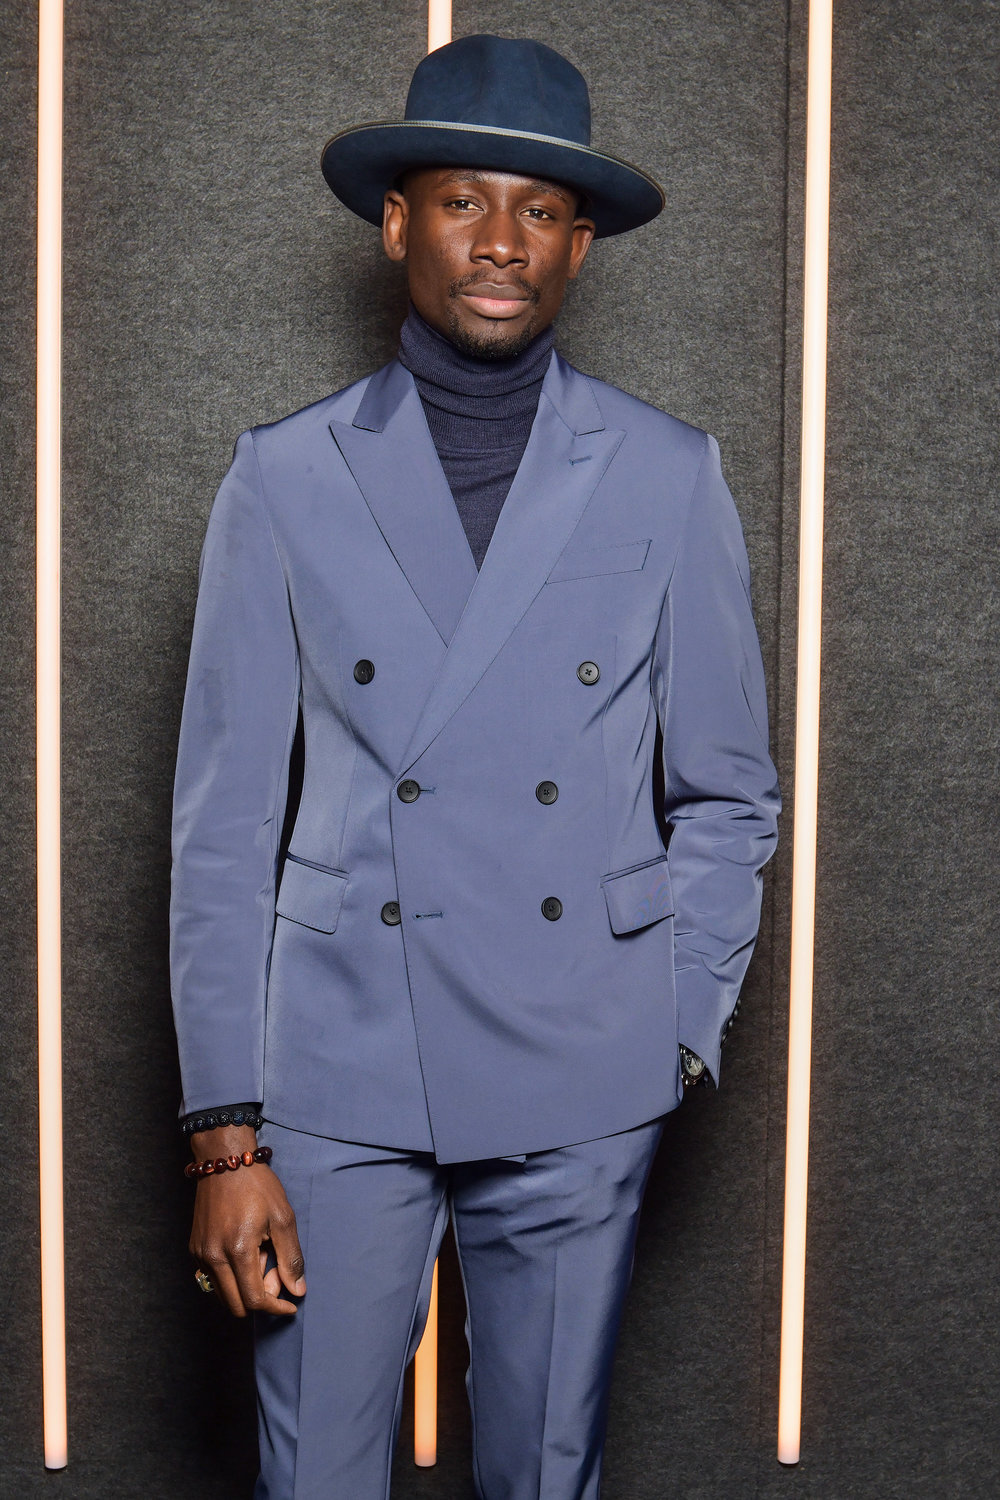 Salomon DuBois Thiombiano backstage at the BOSS Fall/Winter 2019 show at Basketball City during New York Fashion Week on Wednesday, February 13, in New York City. Photography, Courtesy of BOSS.